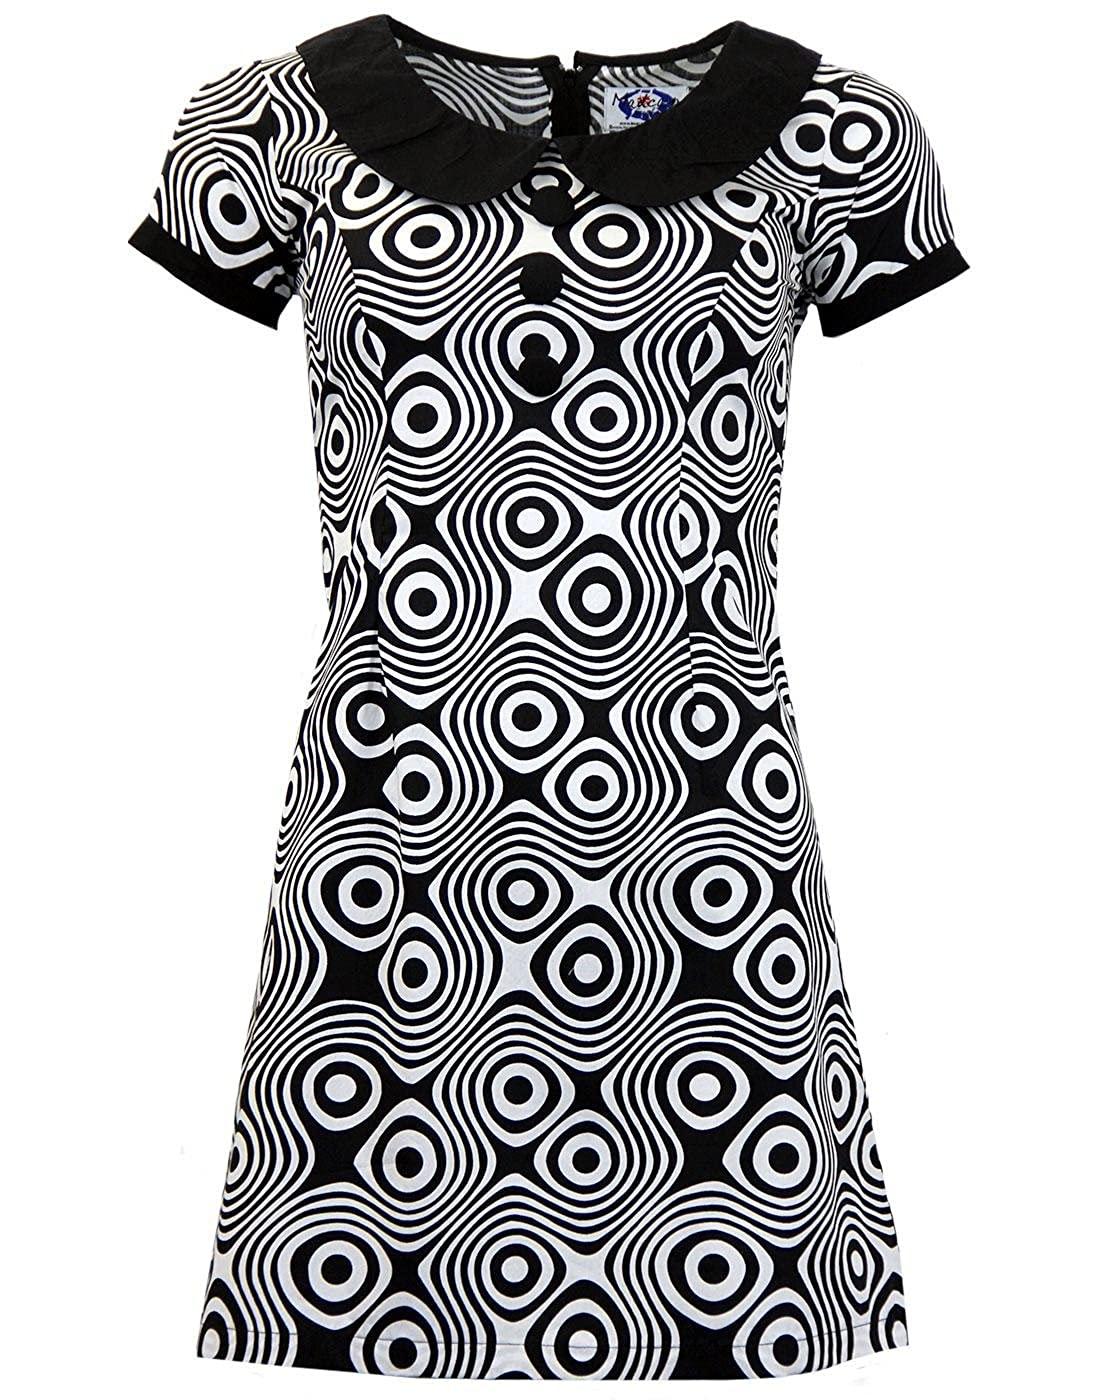 Hippie Costumes, Hippie Outfits Madcap England Womens Dollierocker Op Art 1960s Retro Mod Mini Dress £39.99 AT vintagedancer.com